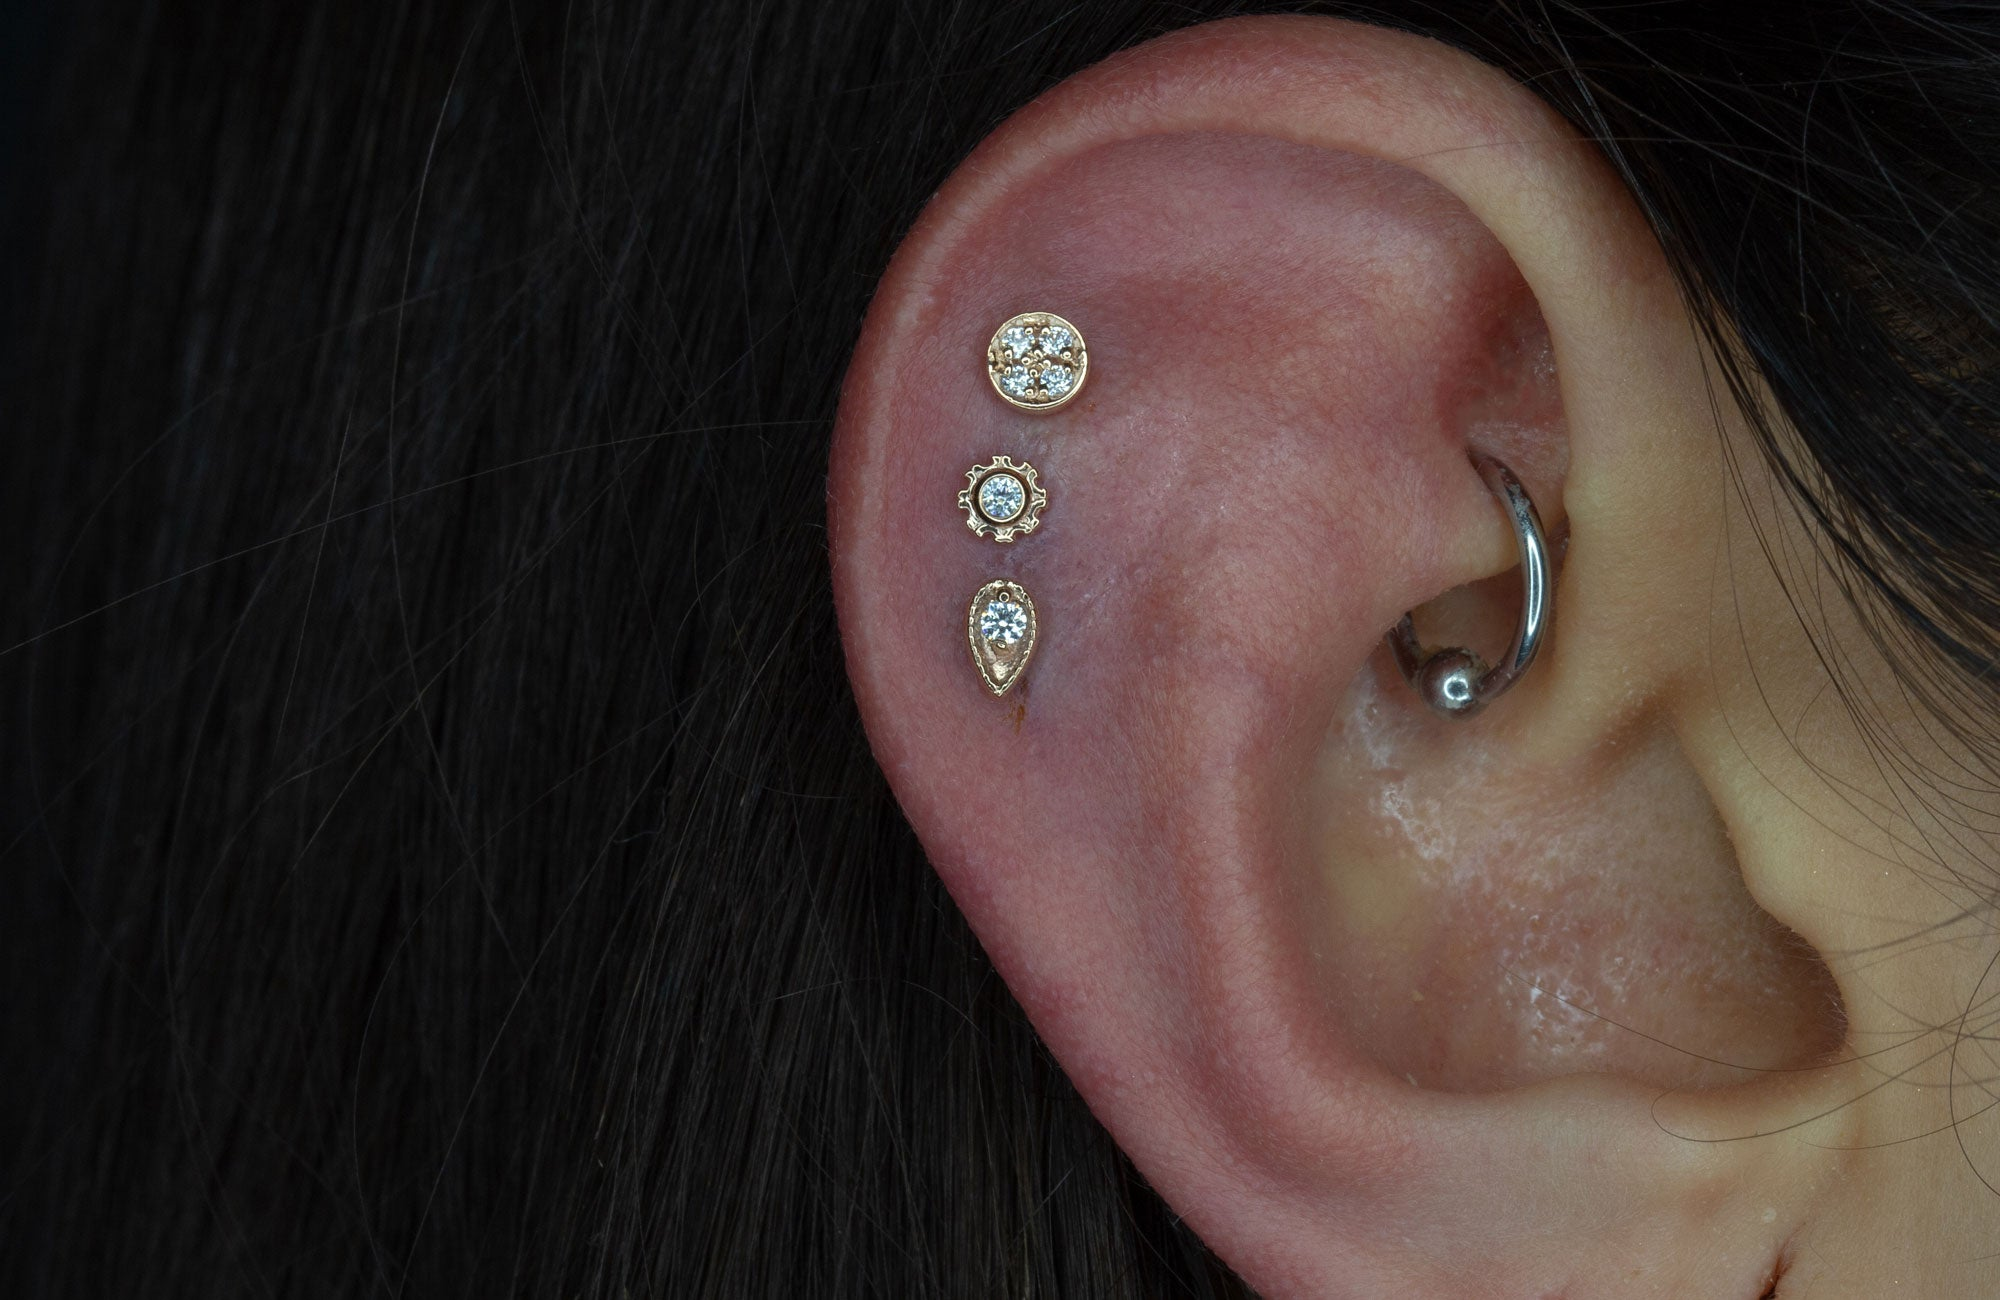 earlobe piercing with feather jewellery